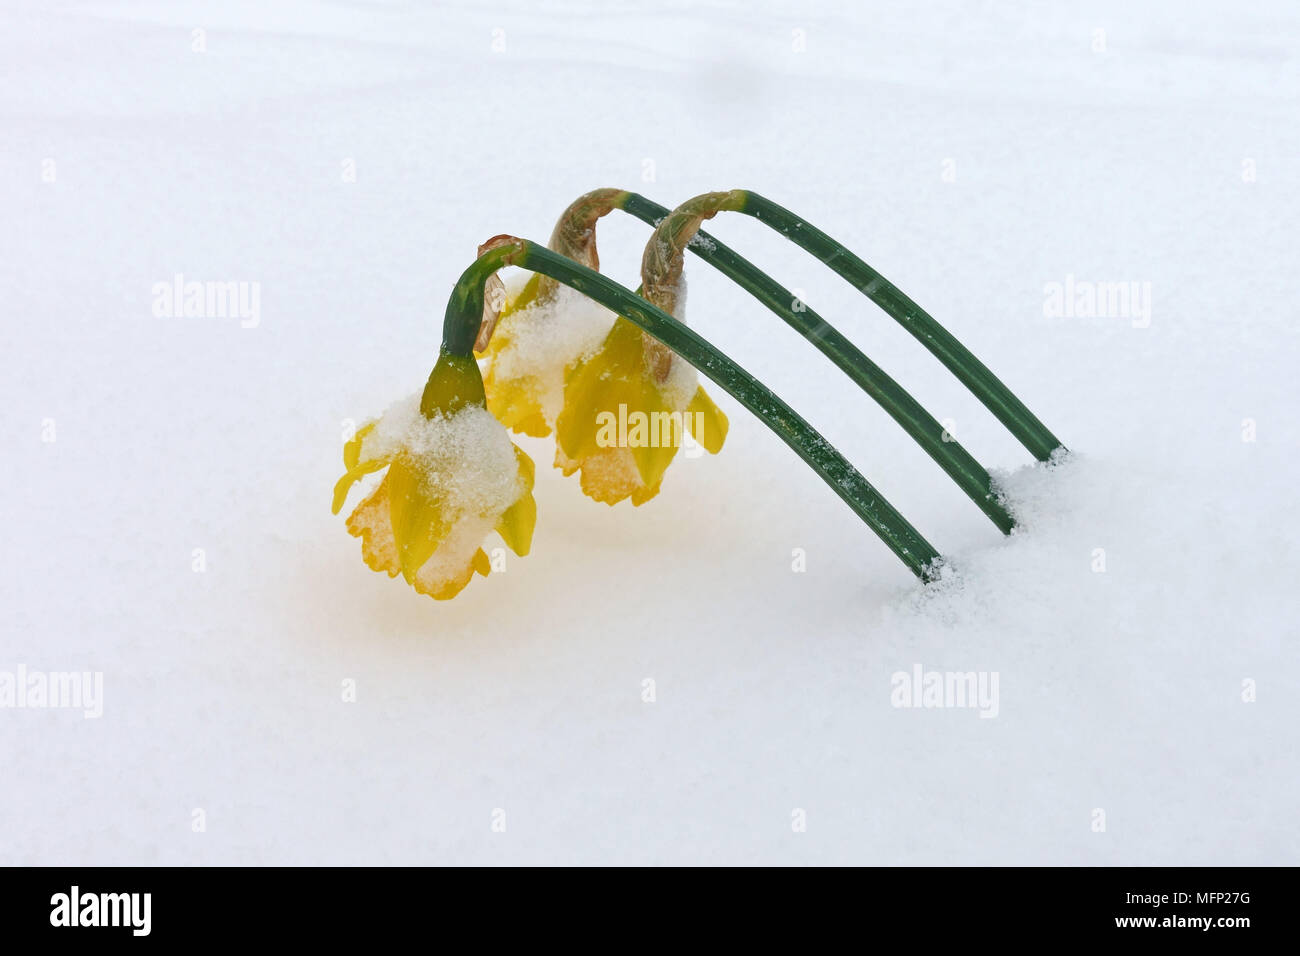 Bowing heads of yellow daffodils, Narcissus, poking through covering of fresh white snow on a grey day, March - Stock Image